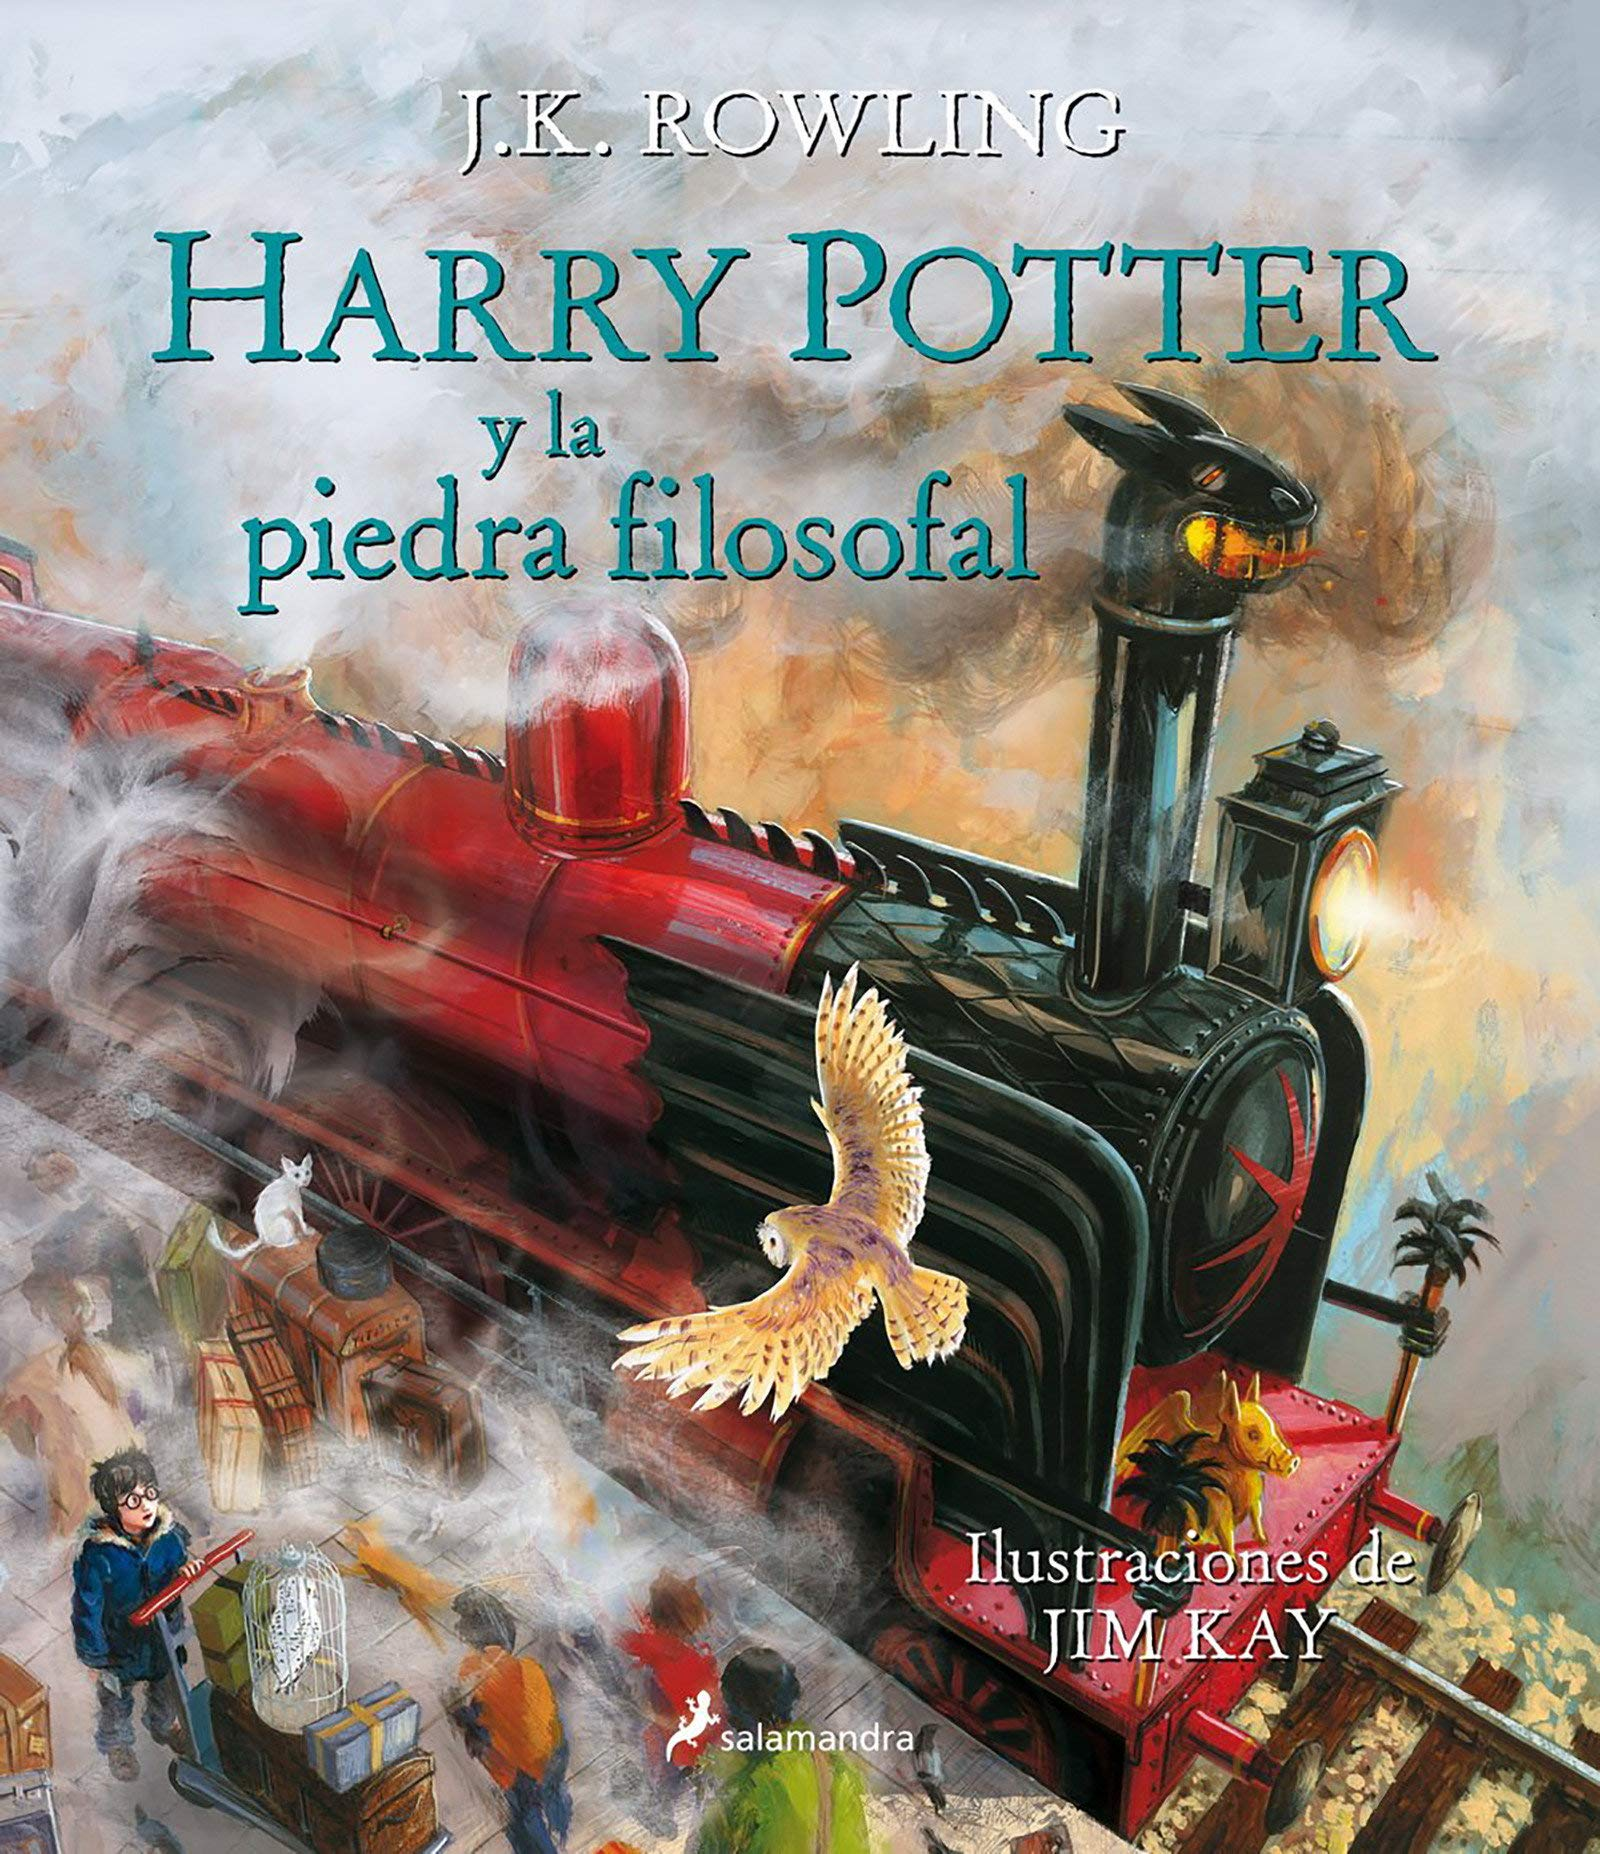 Harry Potter Y La Piedra Filosofal Edición Ilustrada Harry Potter And The Sorcerer S Stone The Illustrated Edition Spanish Edition Rowling J K Kay Jim 9788498387094 Books